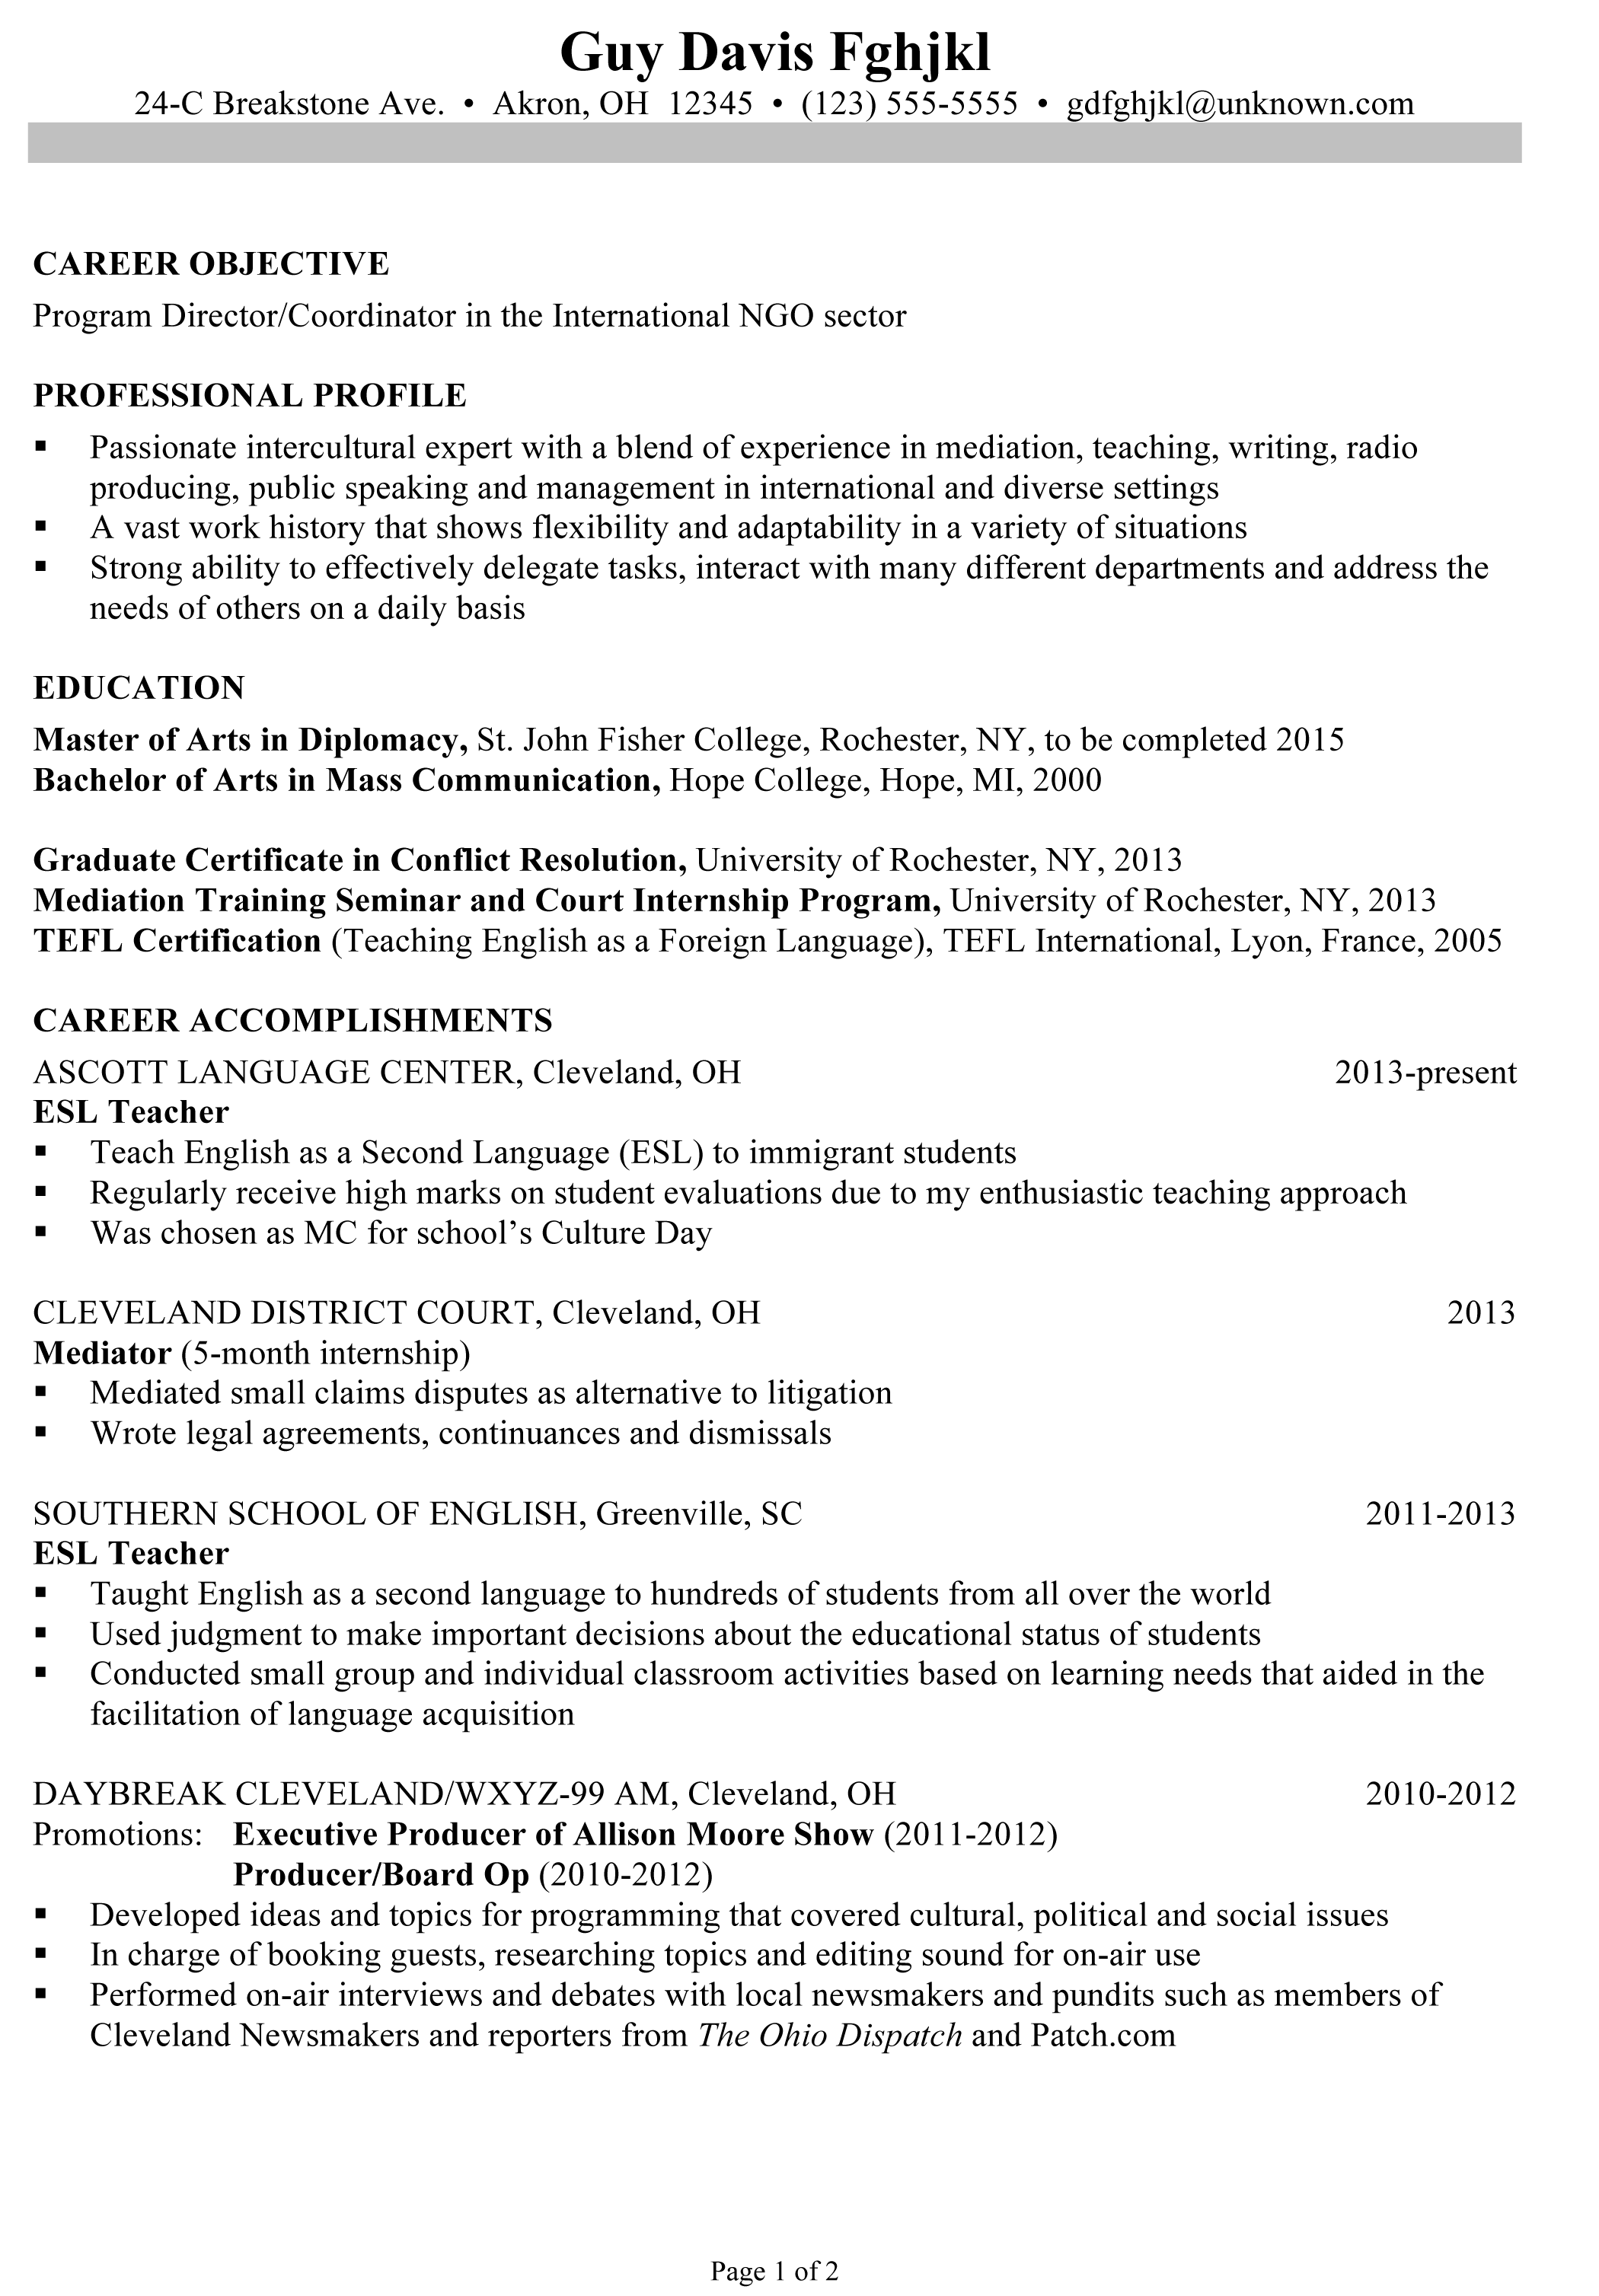 Professional Summary Resume Example Best TemplateSample Resumes ...